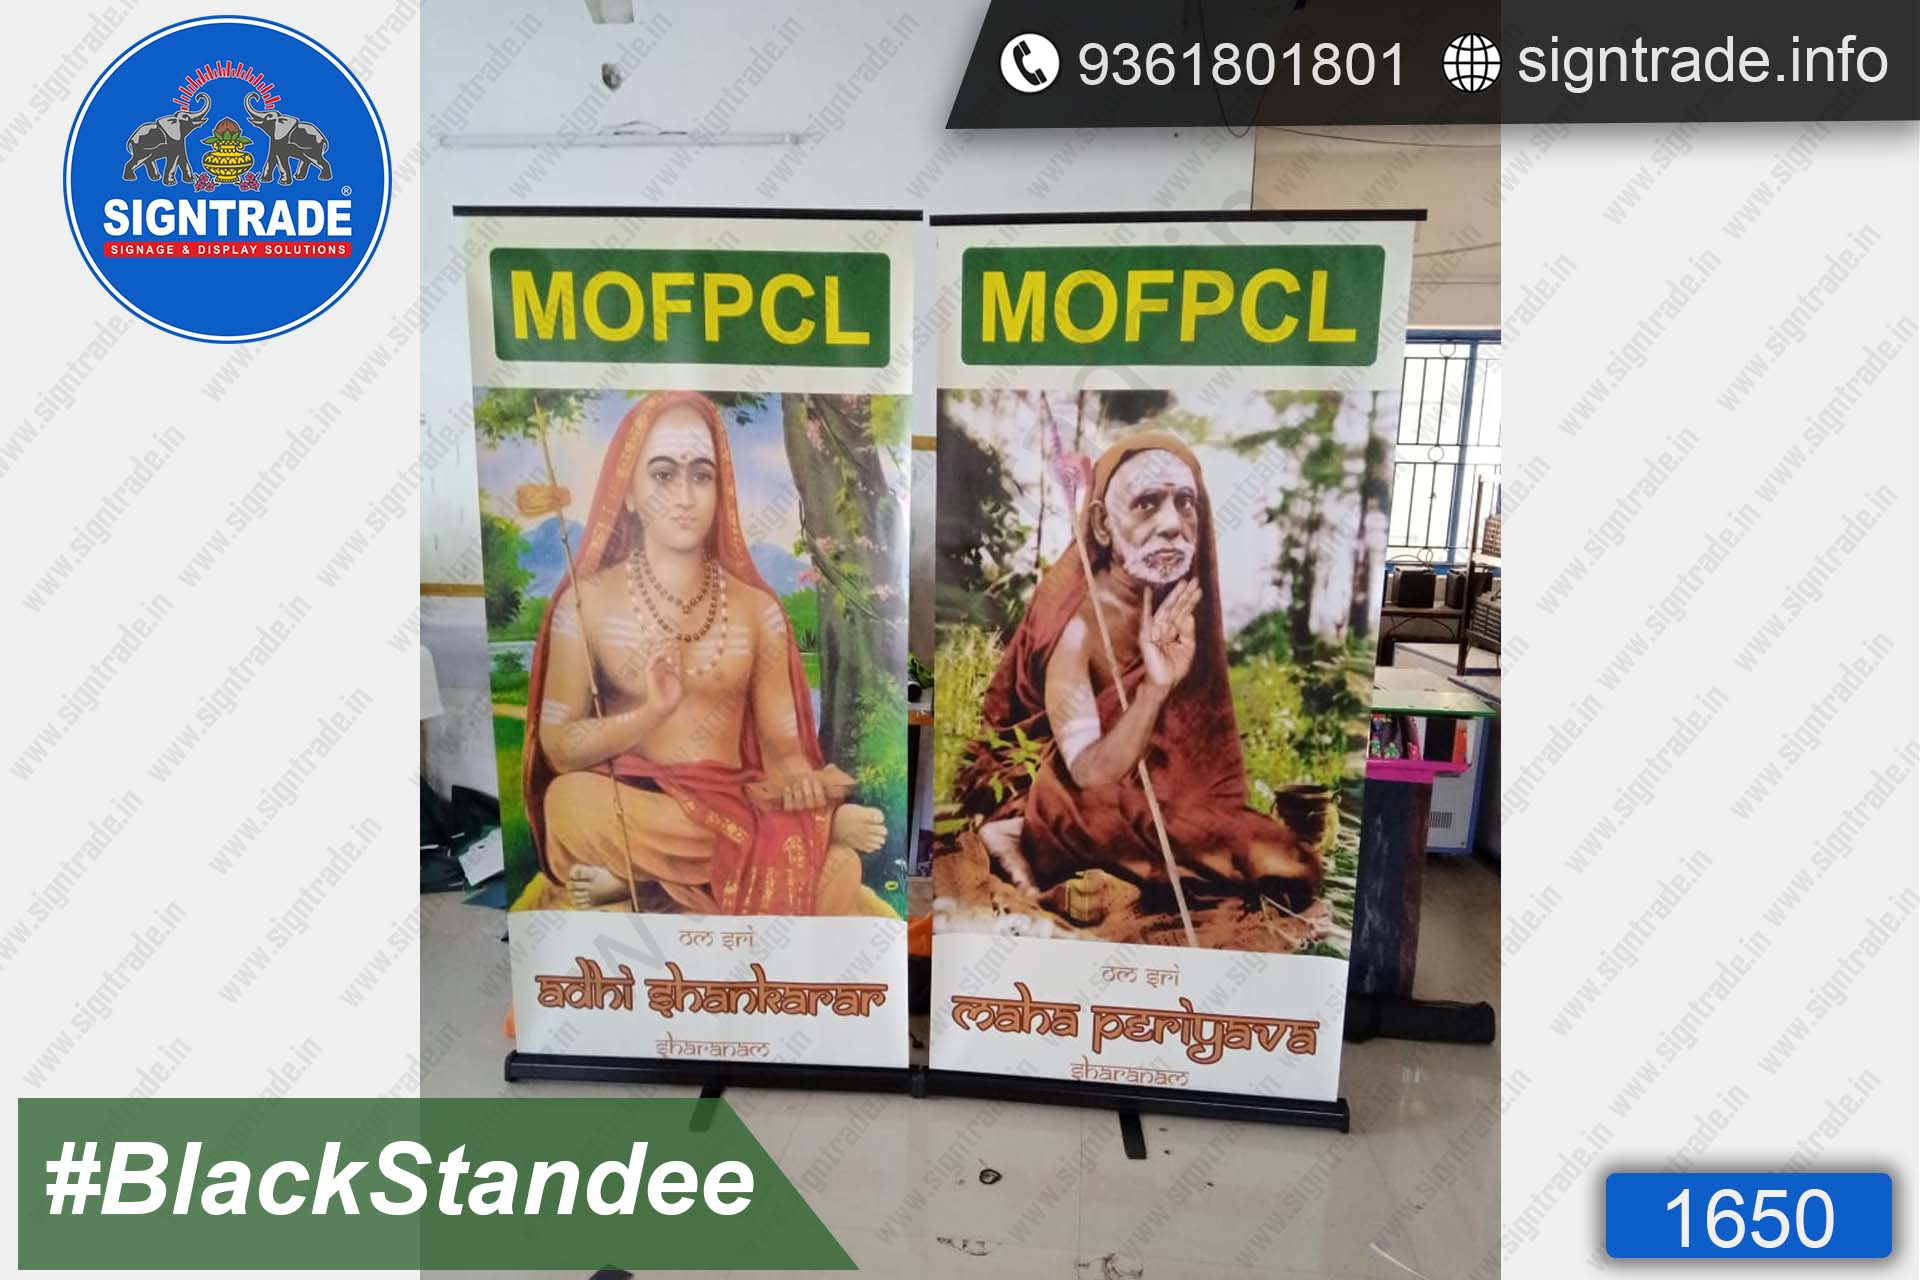 MOFPCL - Rollup Banner Stand - SIGNTRADE - Rollup Banner Stand Manufactures in Chennai